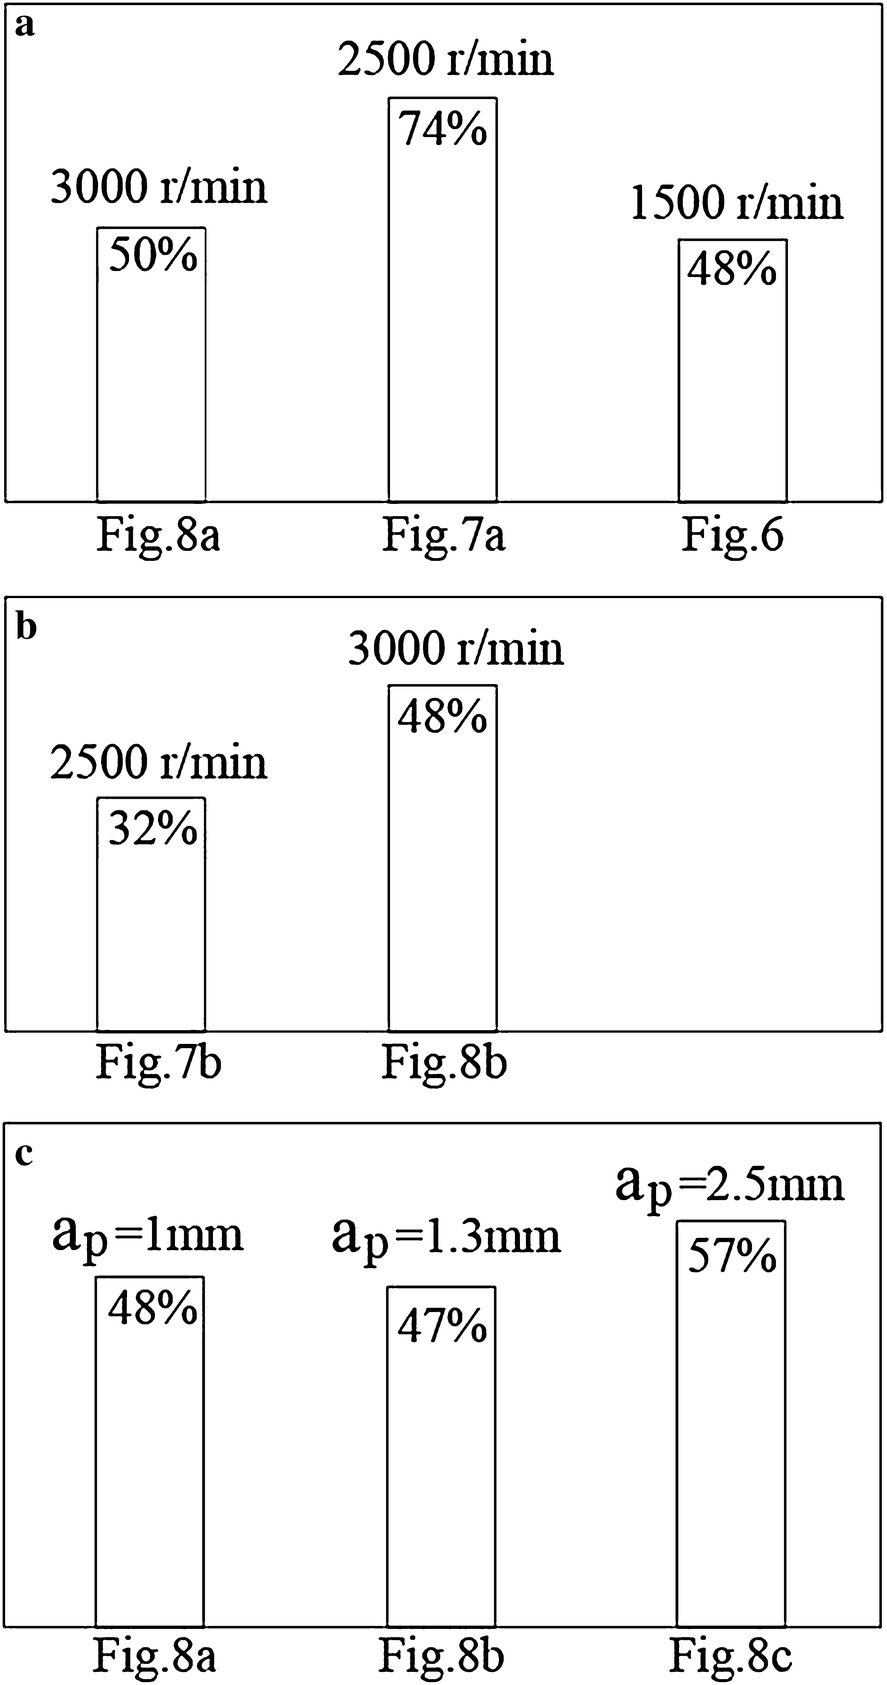 Active Damping Of Milling Vibration Using Operational Amplifier Electronic Devices And Circuits Schaums Pdf Figure 9